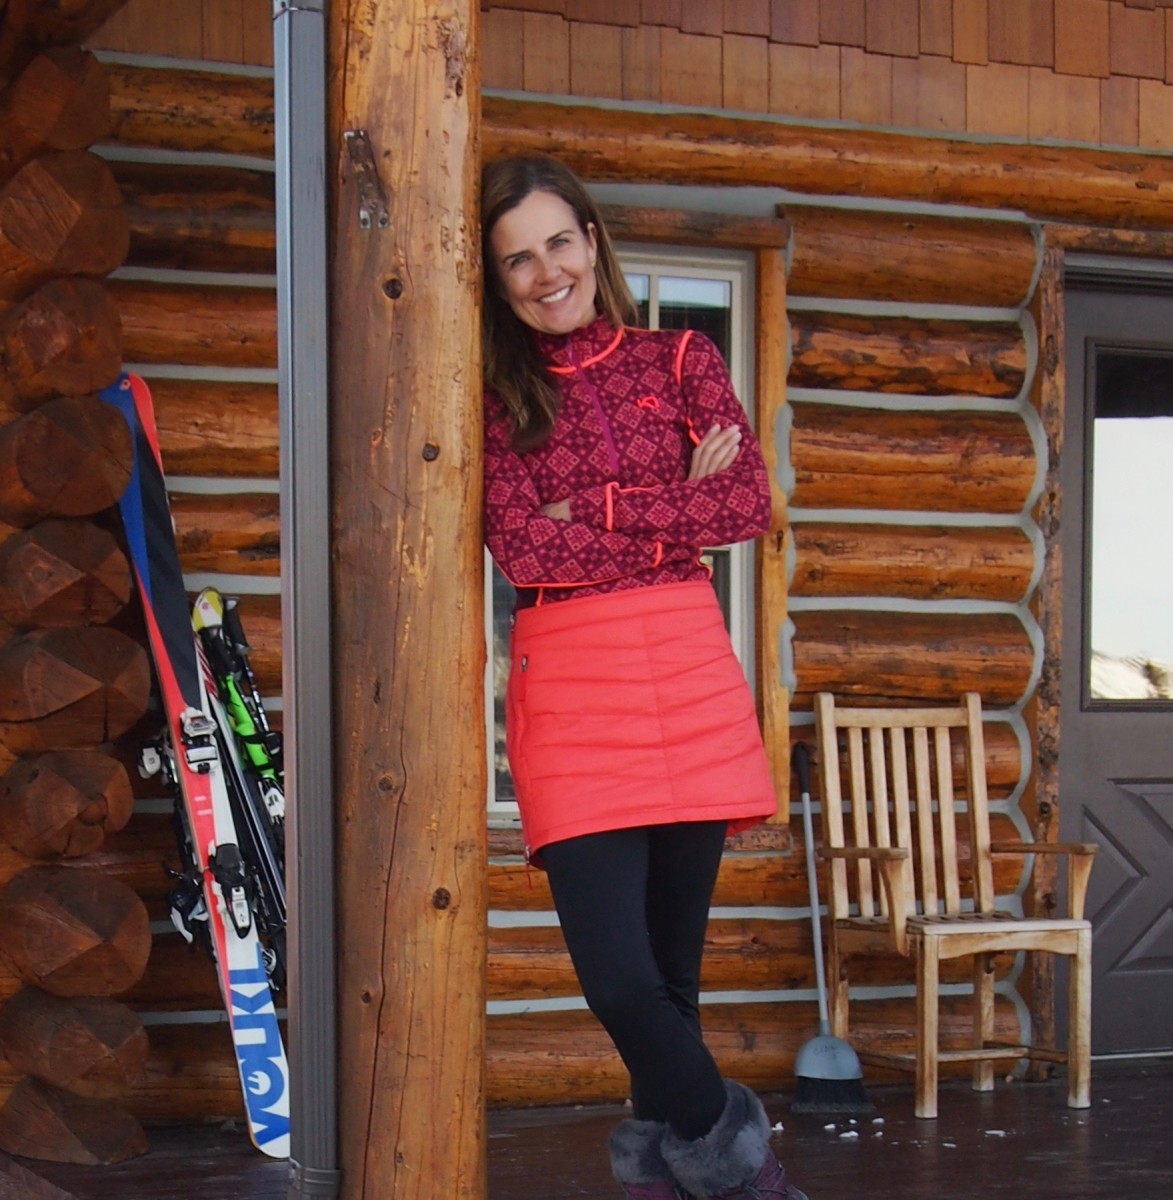 An open letter to the ski industry from a ski mom